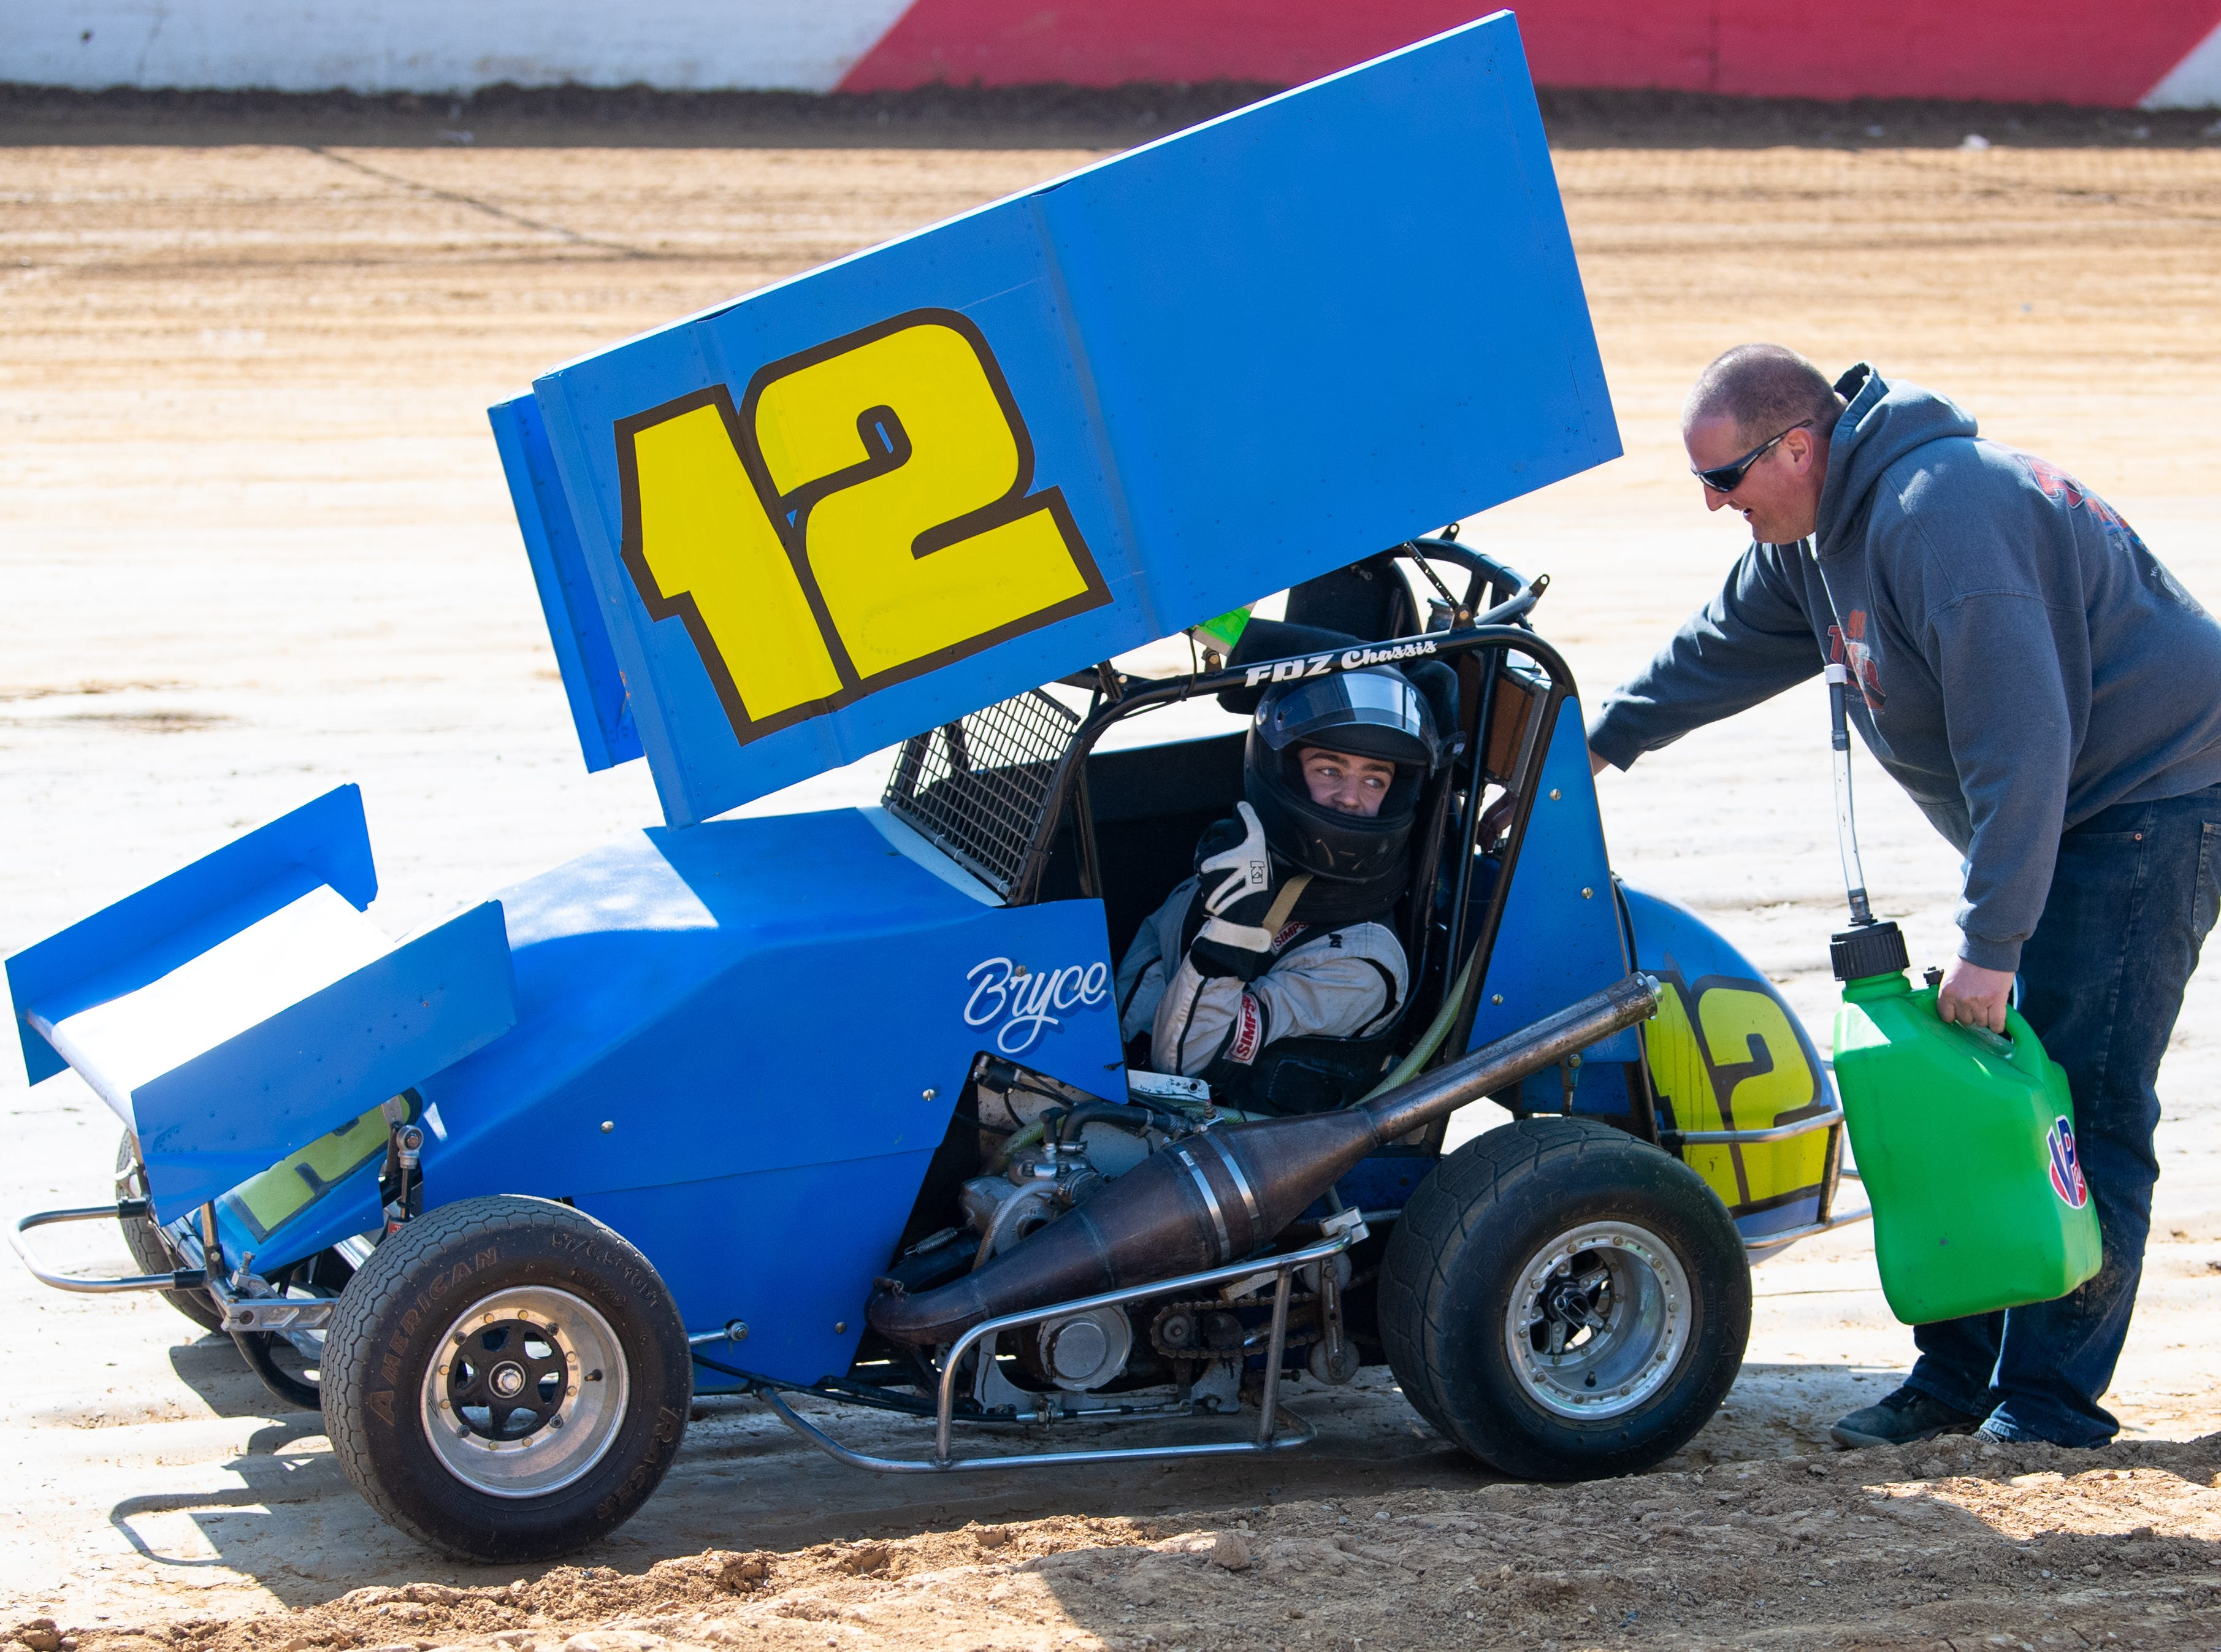 Bryce Trone (12) discusses strategy as his car gets gassed up during the Trail-Way Speedway season opener, April 6, 2019.